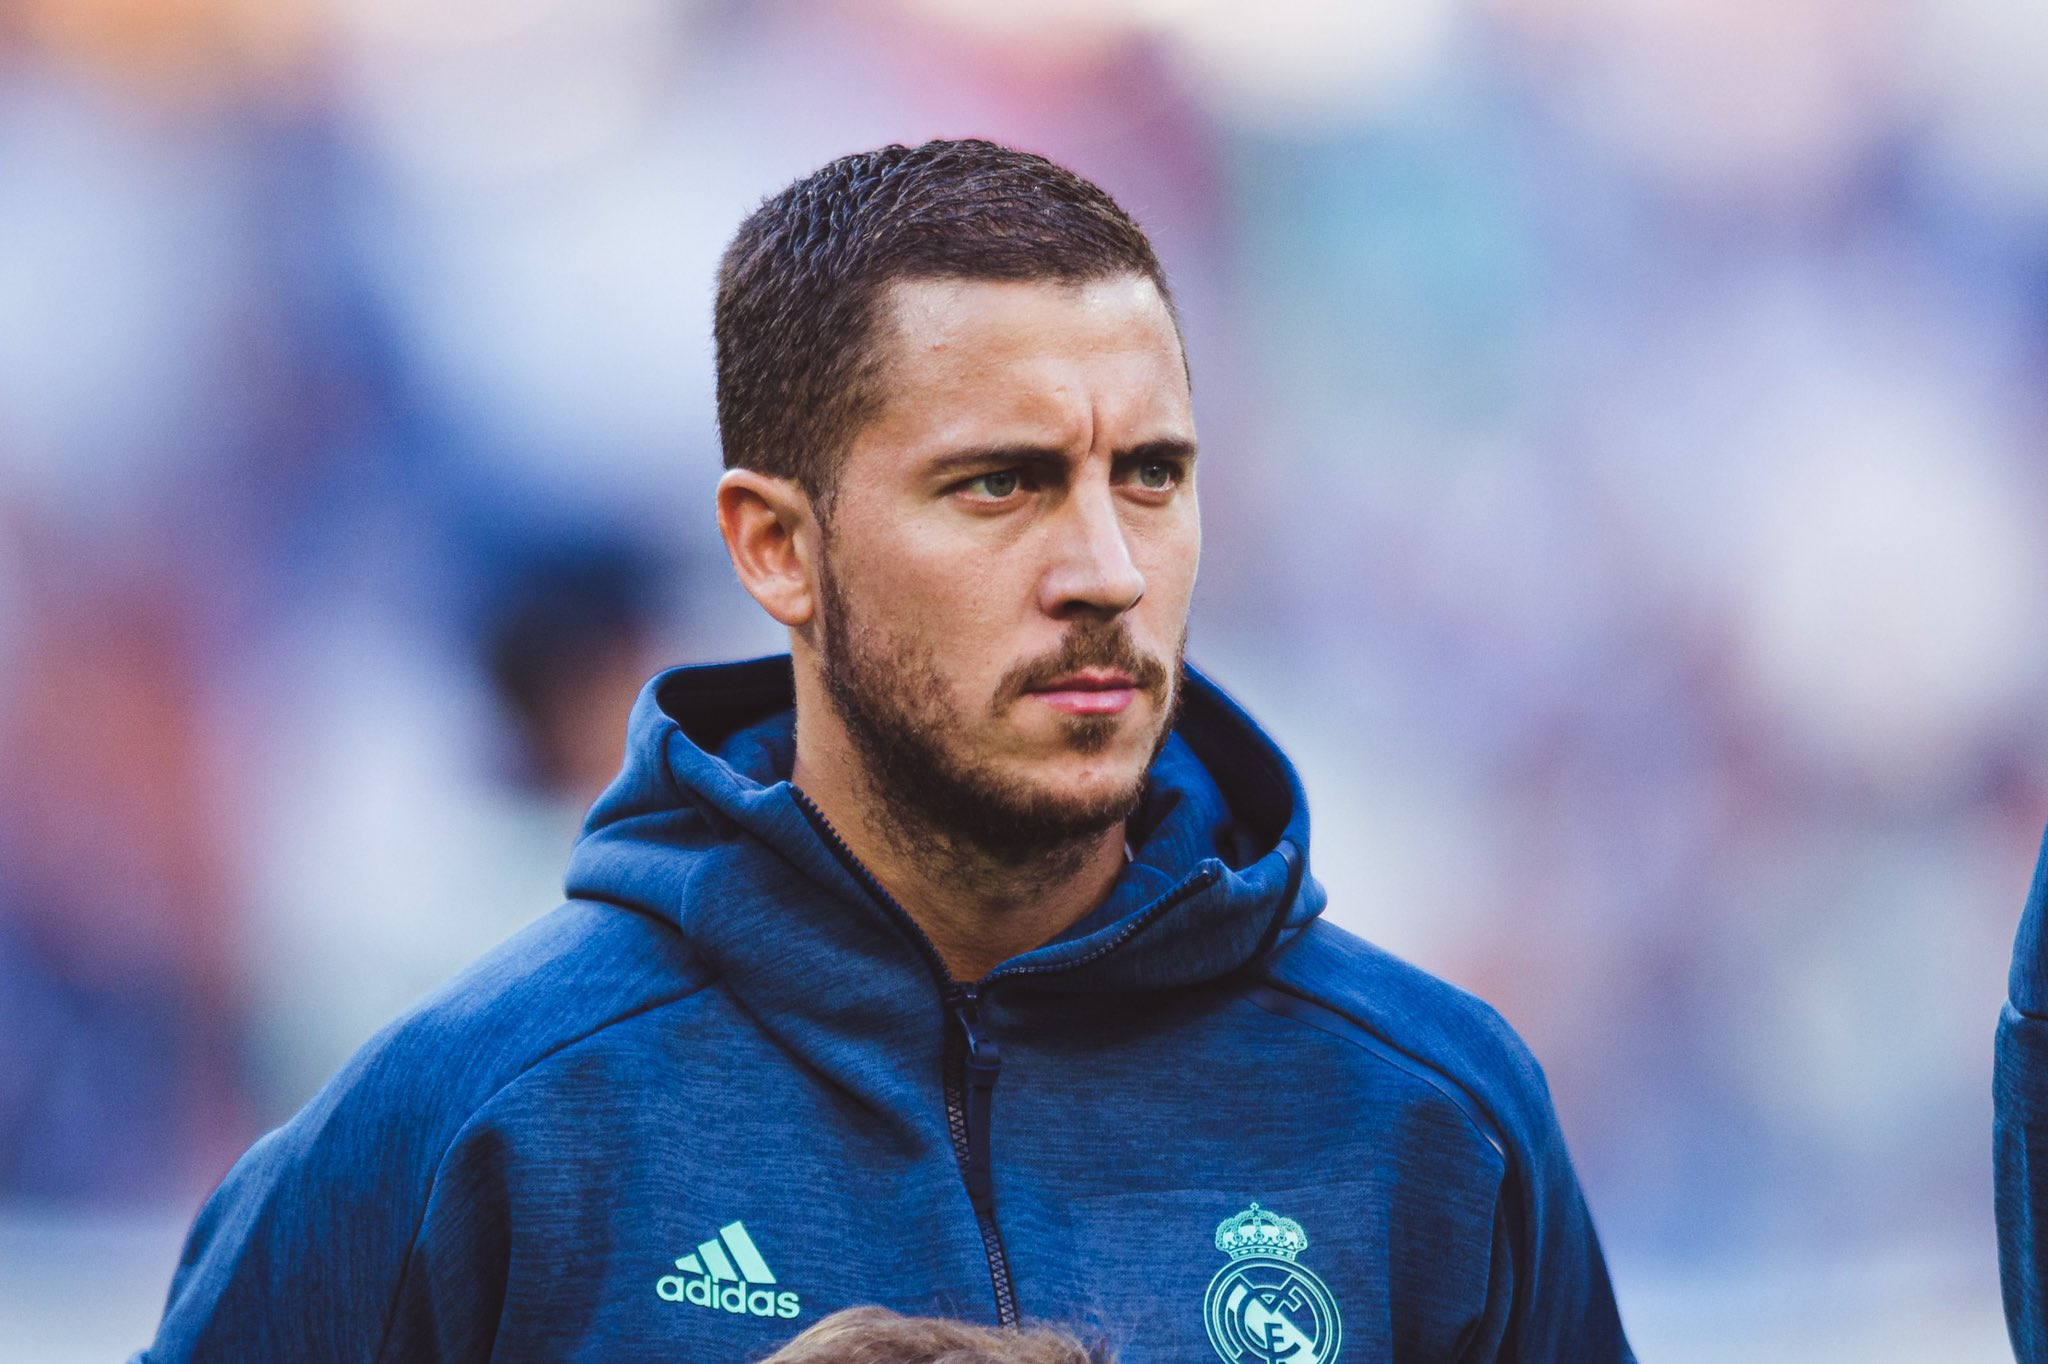 Eden Hazard fires dig at Conte and Sarri's time at Chelsea